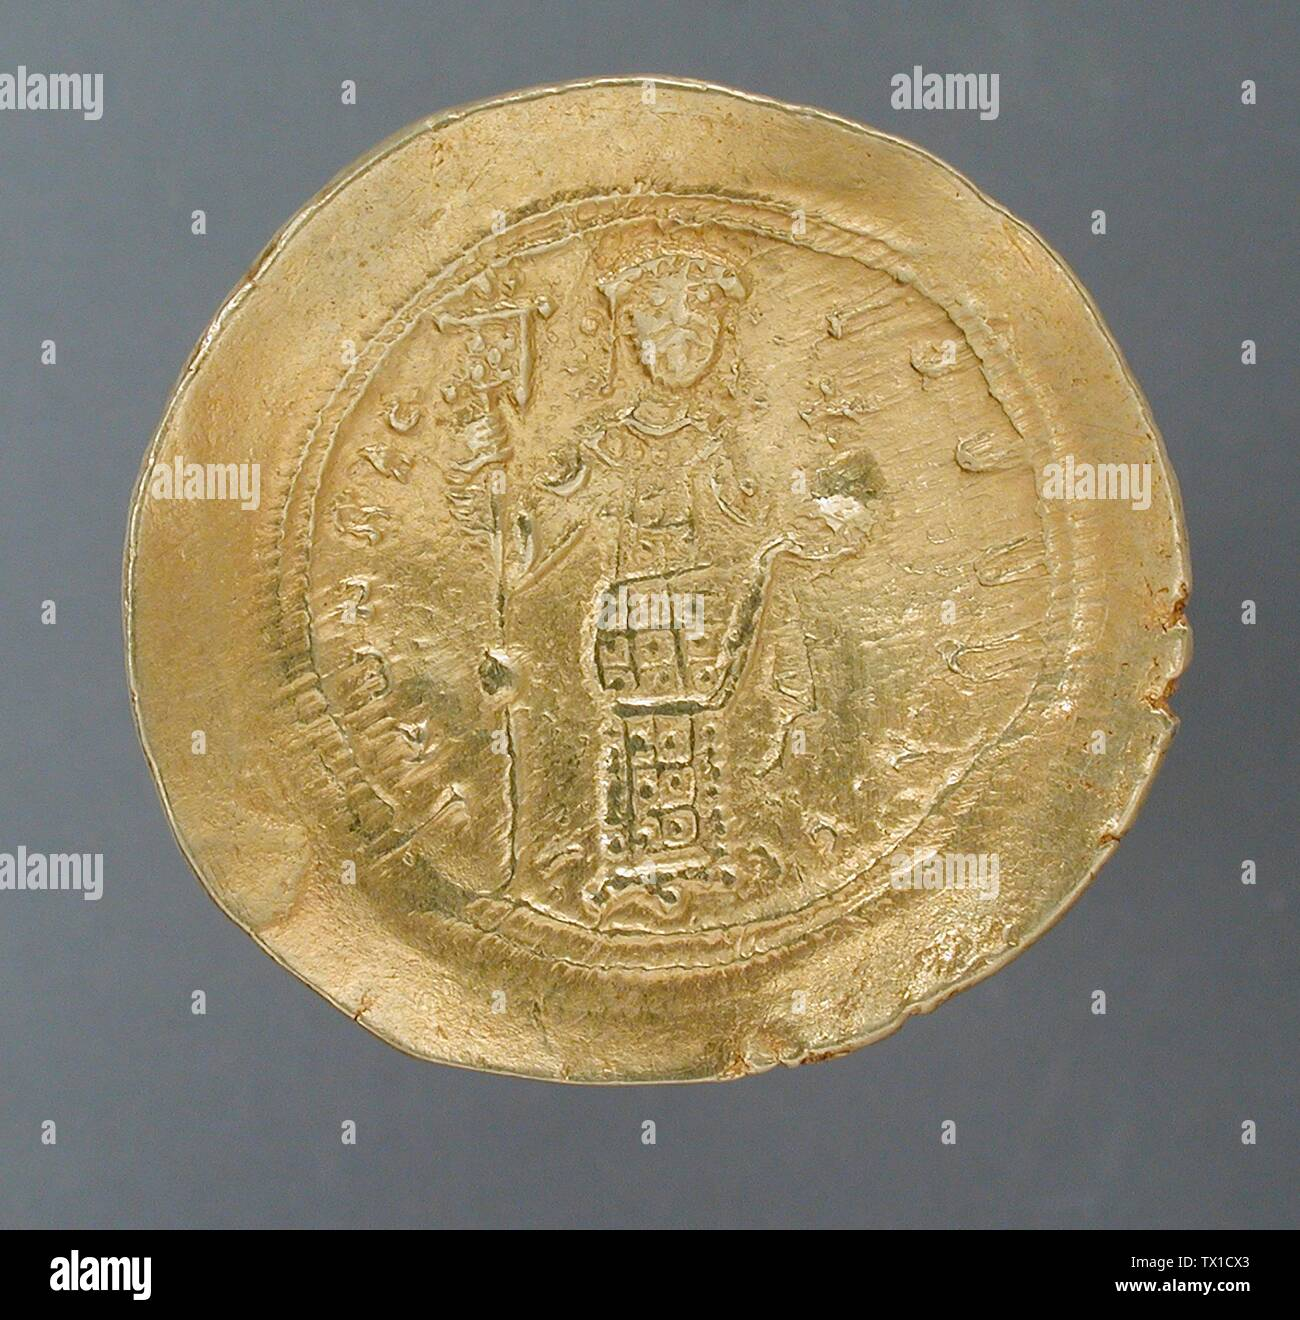 'Coin, Isaac I Commenus (image 2 of 2); English:  Constantinople, Byzantine, circa 1057-1059 A.D. Tools and Equipment; coins Gold Diameter: 1 1/16 in. (2.6 cm) Museum Associates Acquisition Fund (M.82.15.6) Art of the Ancient Near East; between circa 1057 and circa 1059 date QS:P571,+1057-00-00T00:00:00Z/8,P1319,+1057-00-00T00:00:00Z/9,P1326,+1059-00-00T00:00:00Z/9,P1480,Q5727902 A.D.; ' - Stock Image